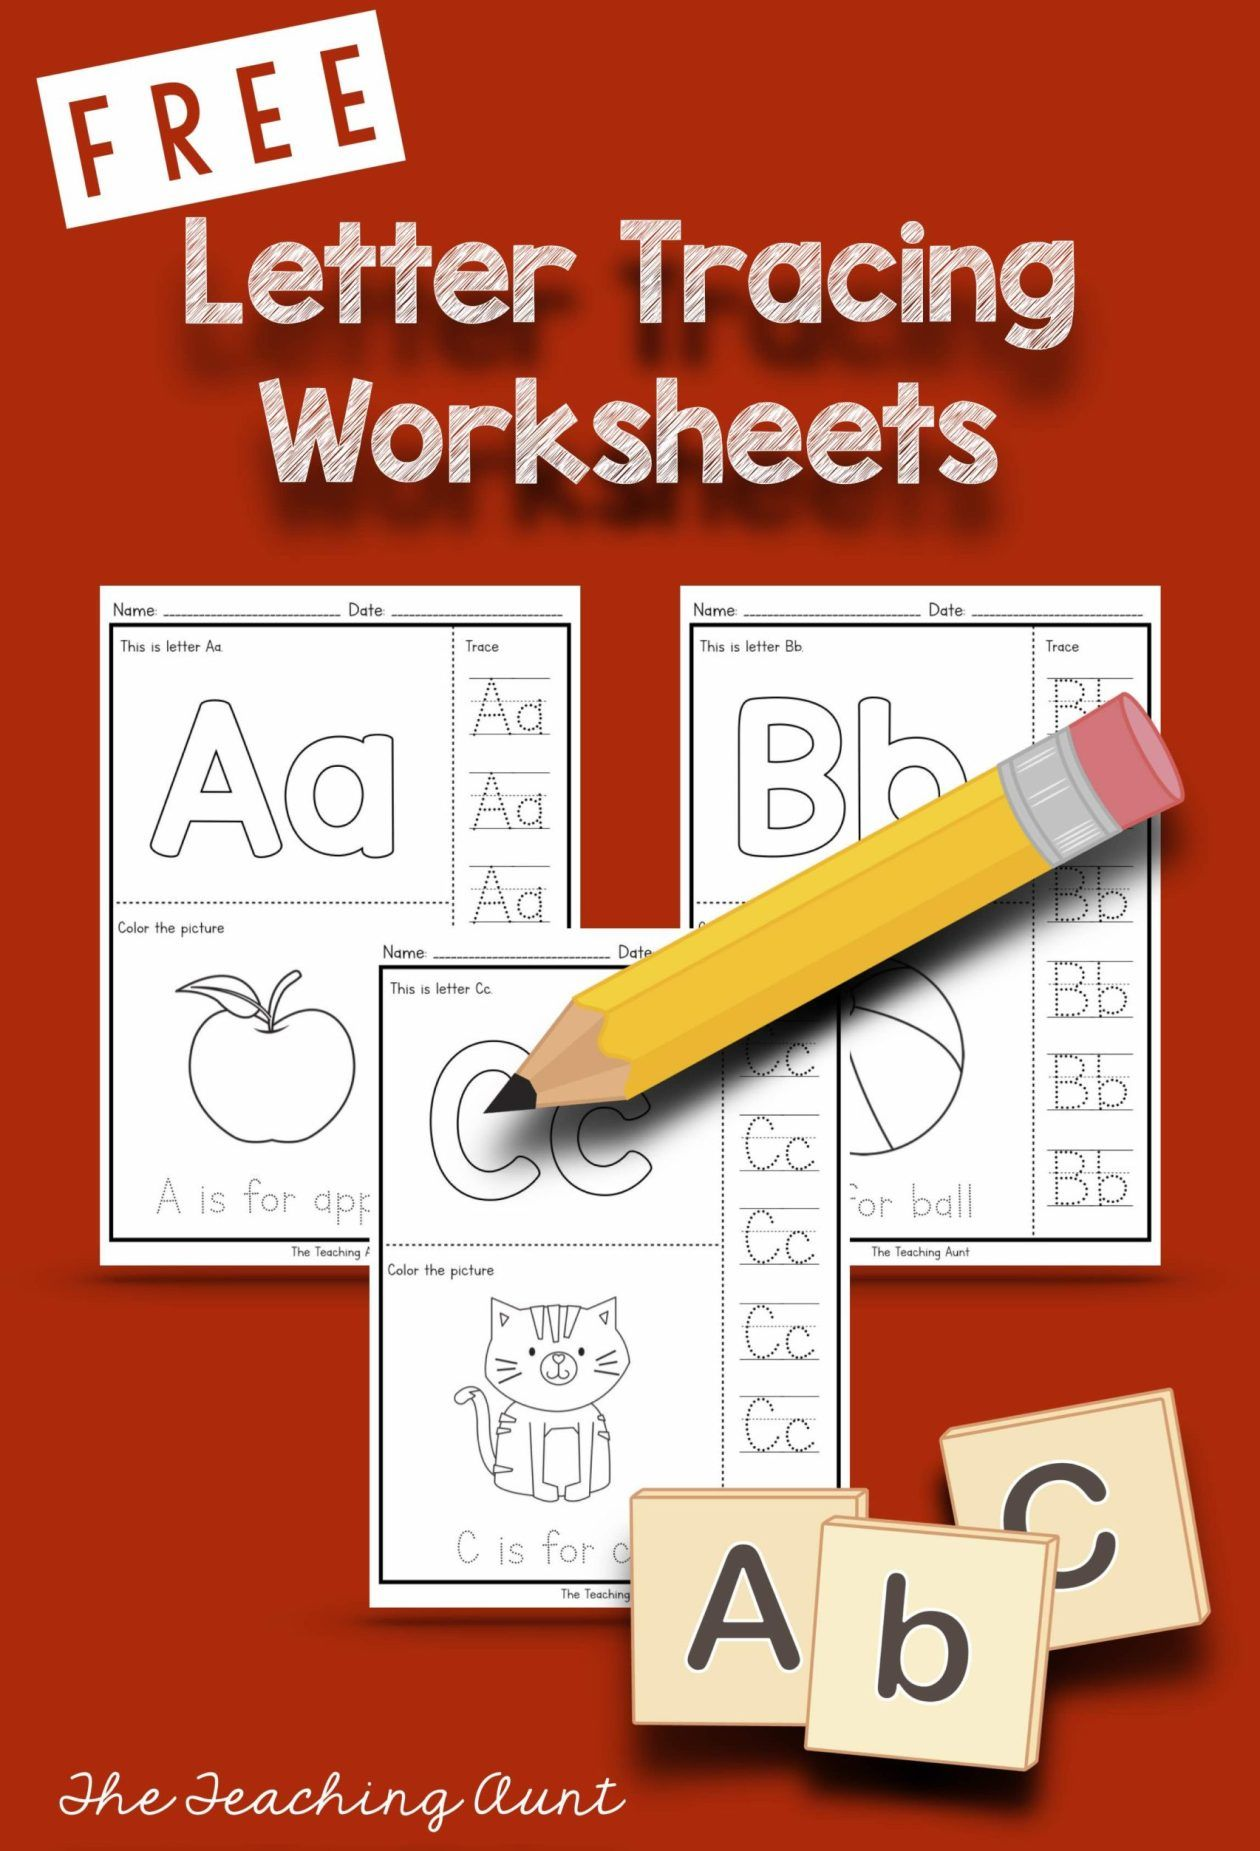 Letters Tracing Worksheets The Teaching Aunt Letter Tracing Worksheets Tracing Letters Tracing Worksheets [ 1851 x 1260 Pixel ]